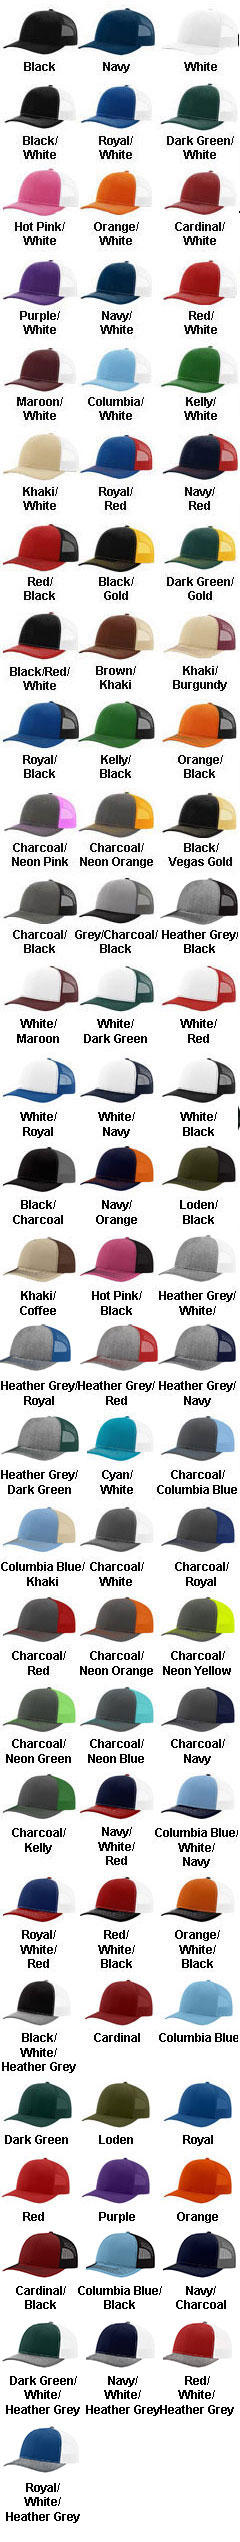 Trucker Snapback Cap - All Colors